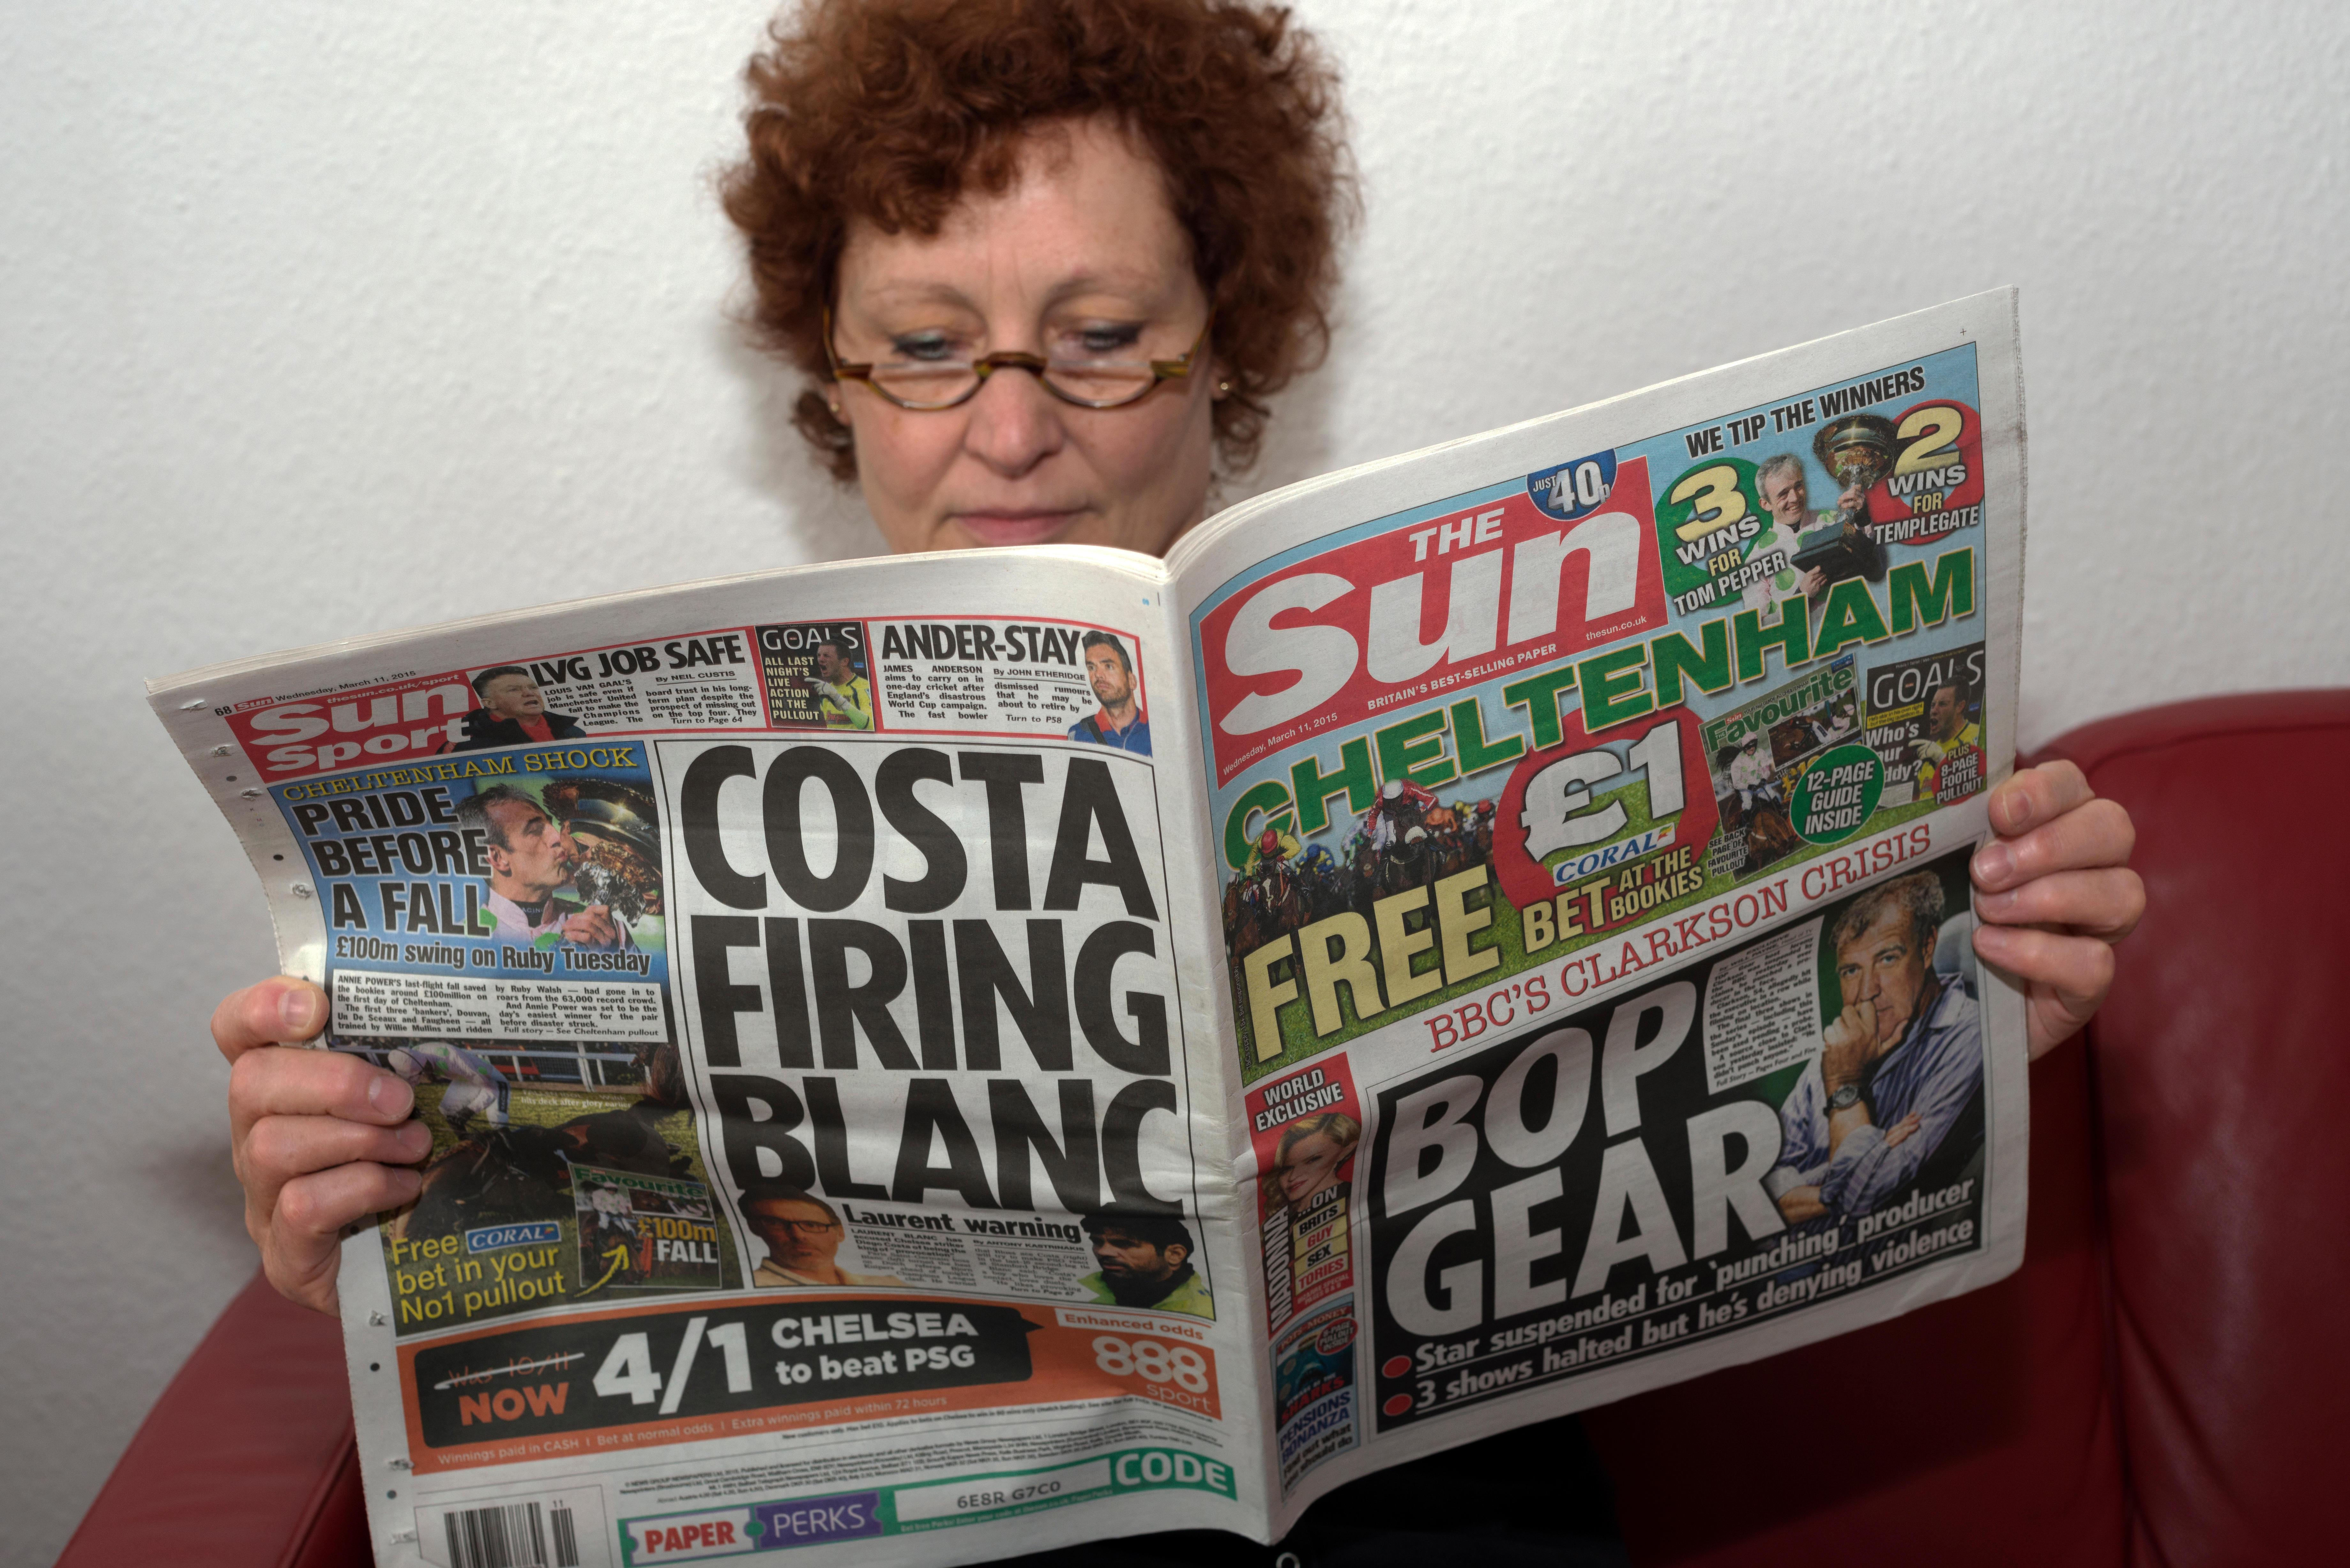 Kate Jackson asks Sun readers what their visions are for the year 2020 and beyond